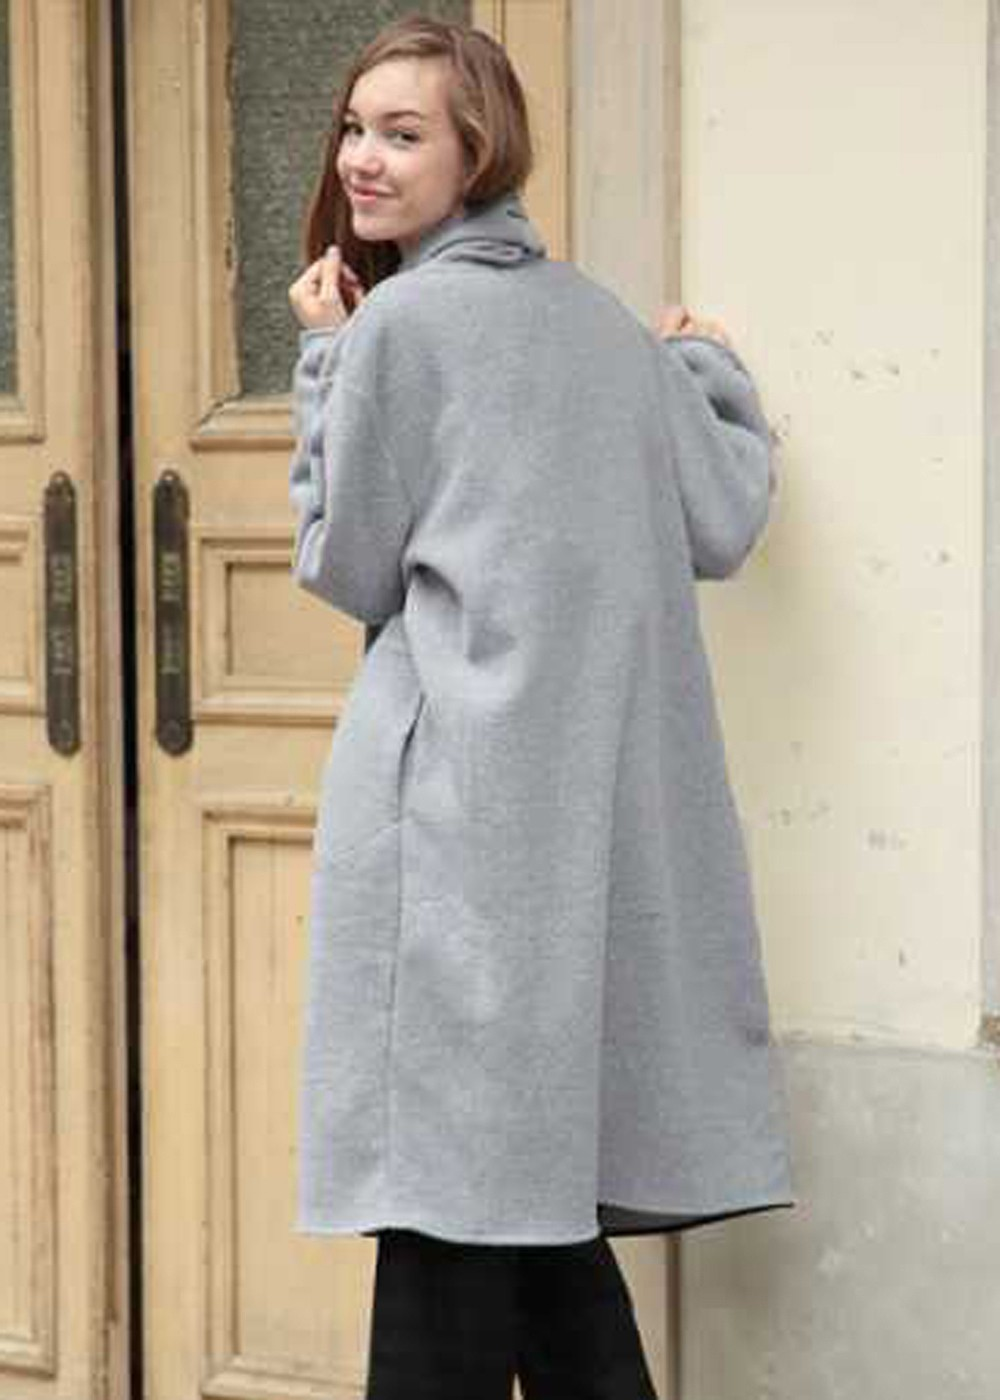 Pile Boucle Cardigan|Gray|その他|POMPADOUR|最大59%OFF